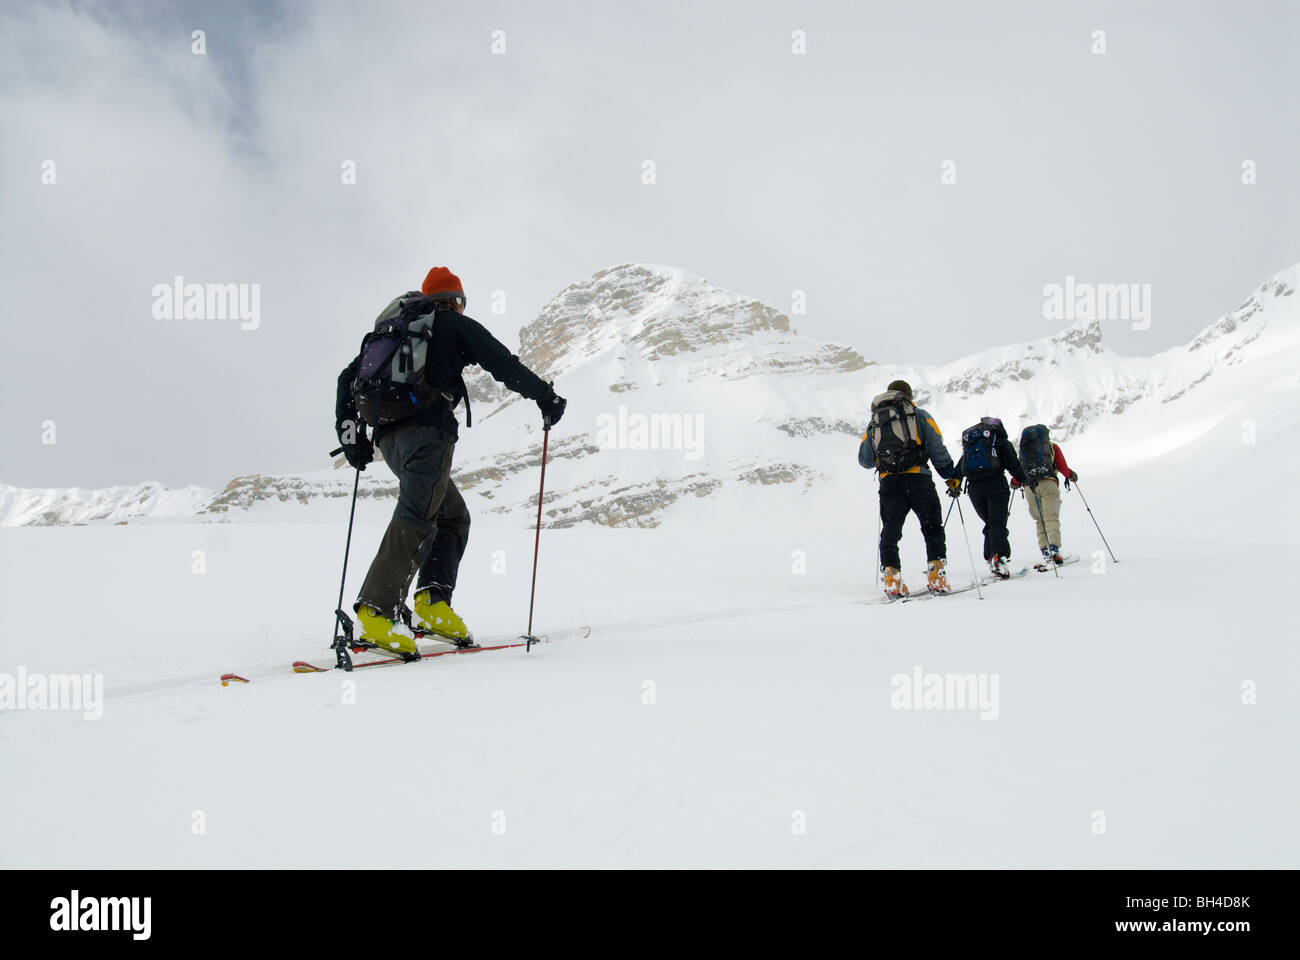 Skiers tour in the backcountry of the Canadian Rockies. - Stock Image